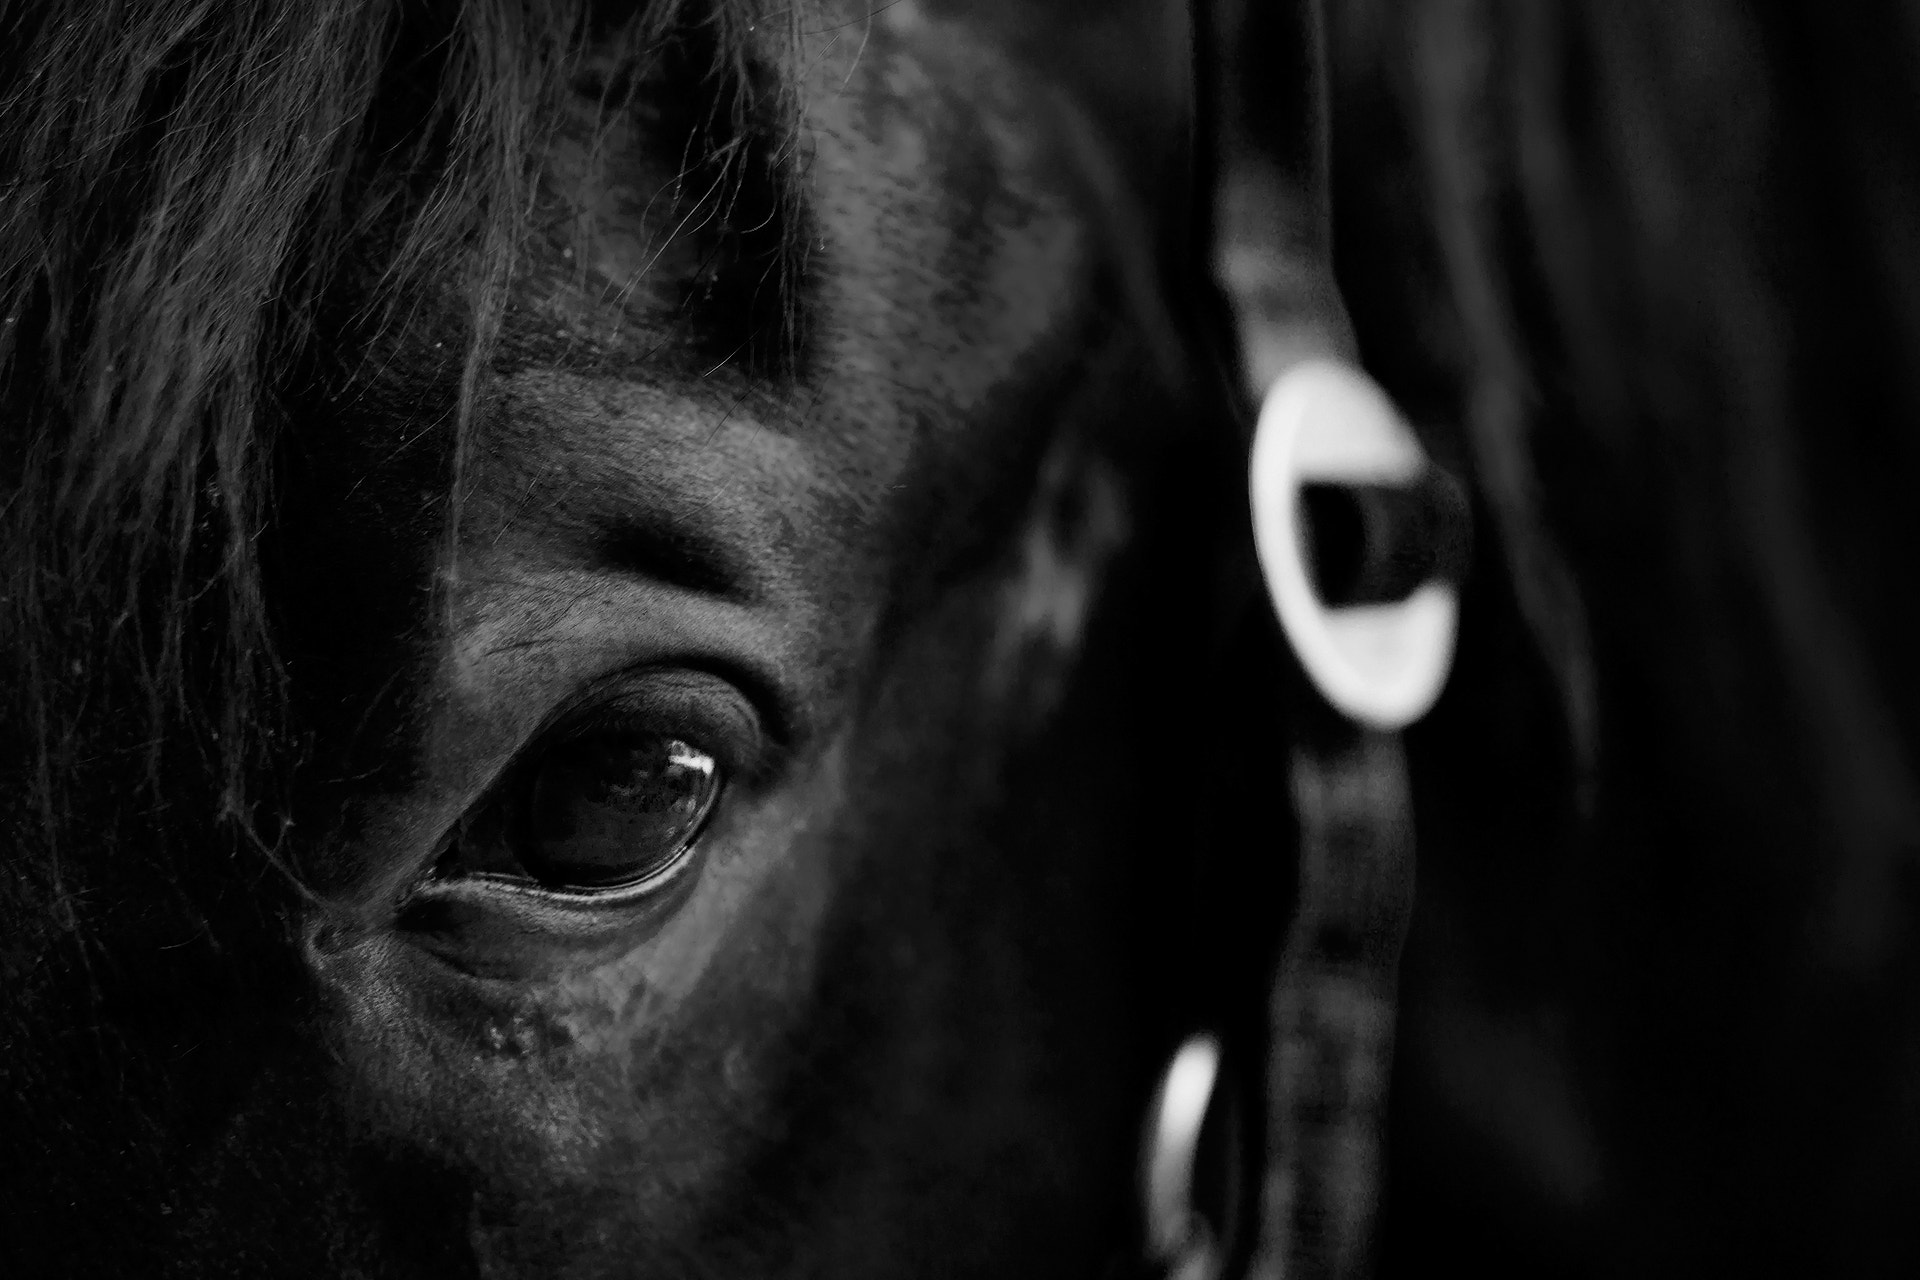 Photograph Horse by Łukasz Auguściak on 500px